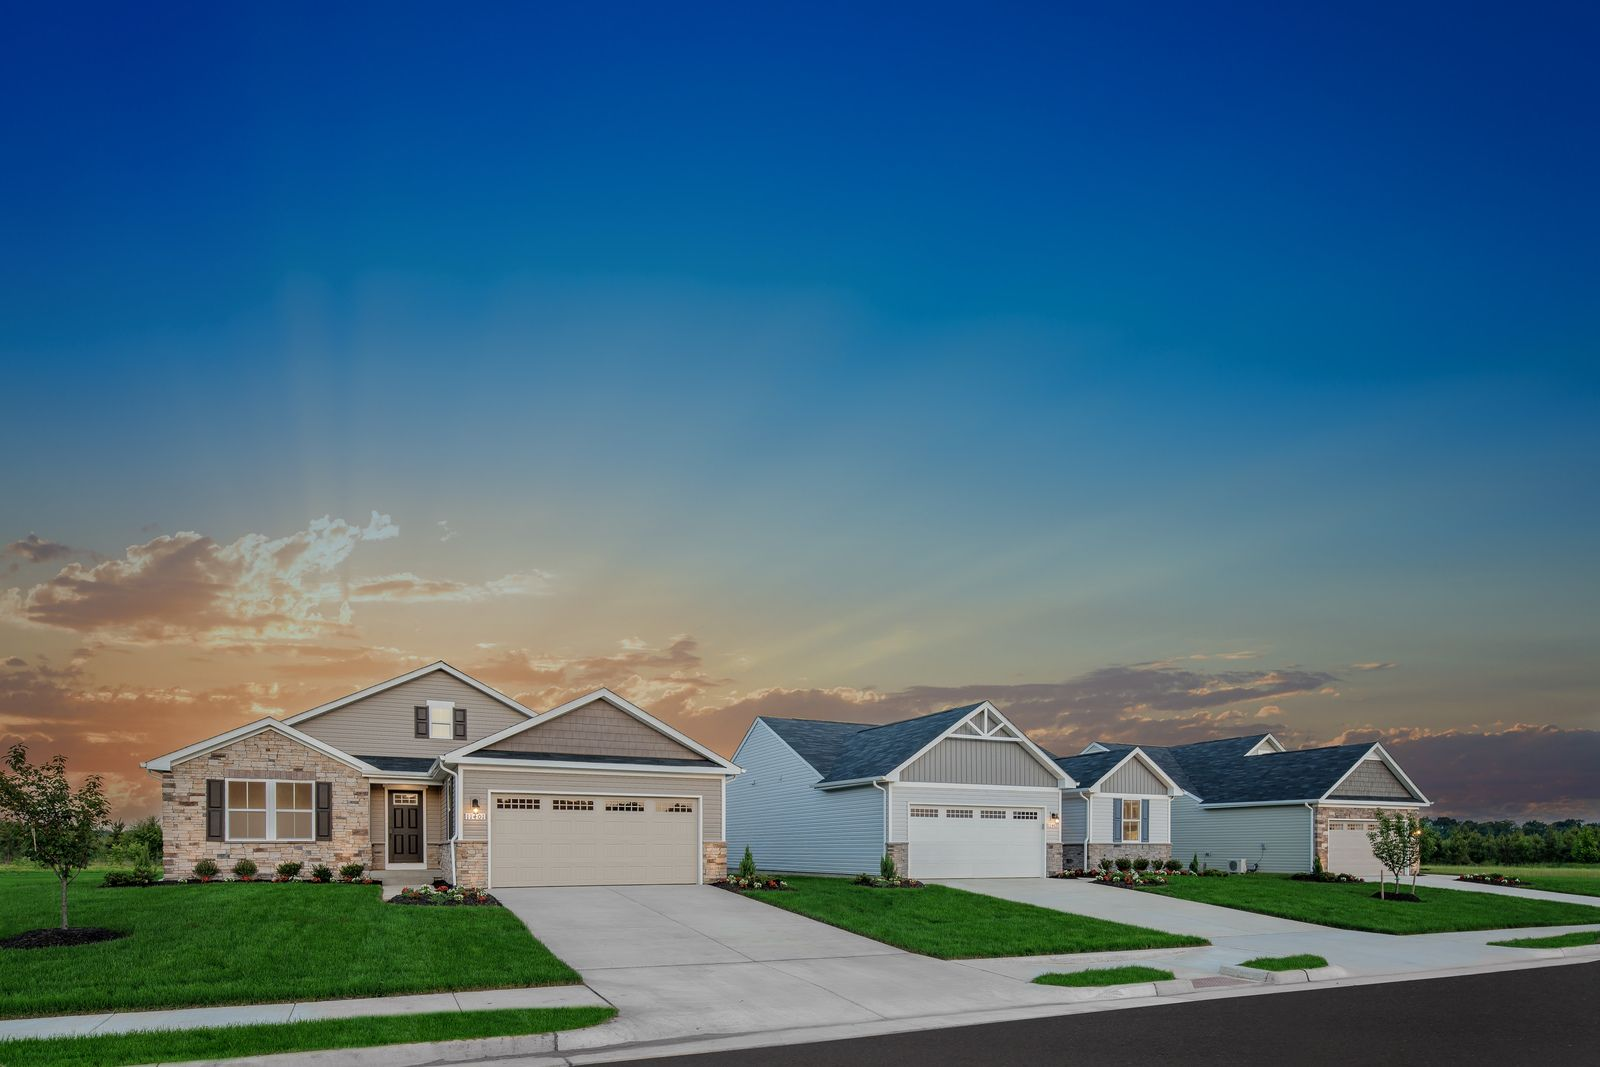 RANCH STYLE HOMES WITH 2-CAR GARAGES, COMMUNITY POOL, CLUBHOUSE, WALKING TRAILS & NO YARD WORK:With 15 homes sold in the last 45 days at Village Oaks, the only thing missing is YOU.Click here to schedule your visit and receive $2,500 toward closing through 10/31.